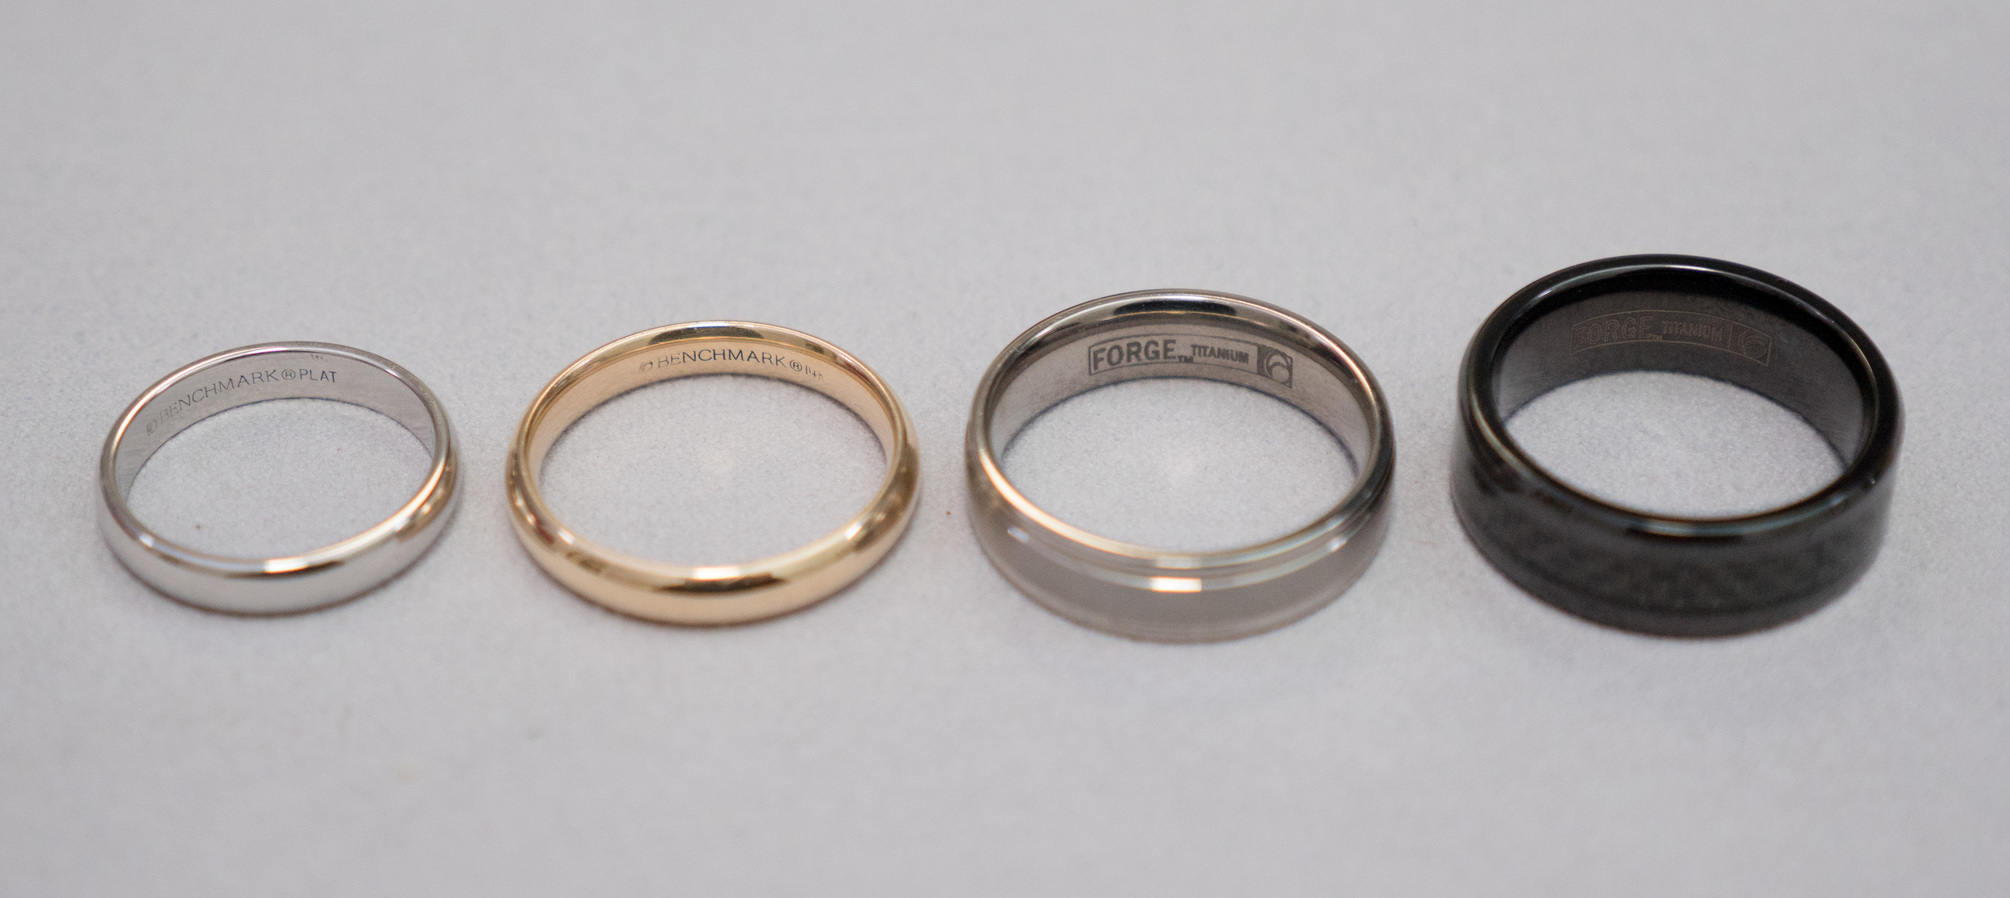 Wedding Band For Men.How To Choose A Men S Wedding Ring In Depth Guide